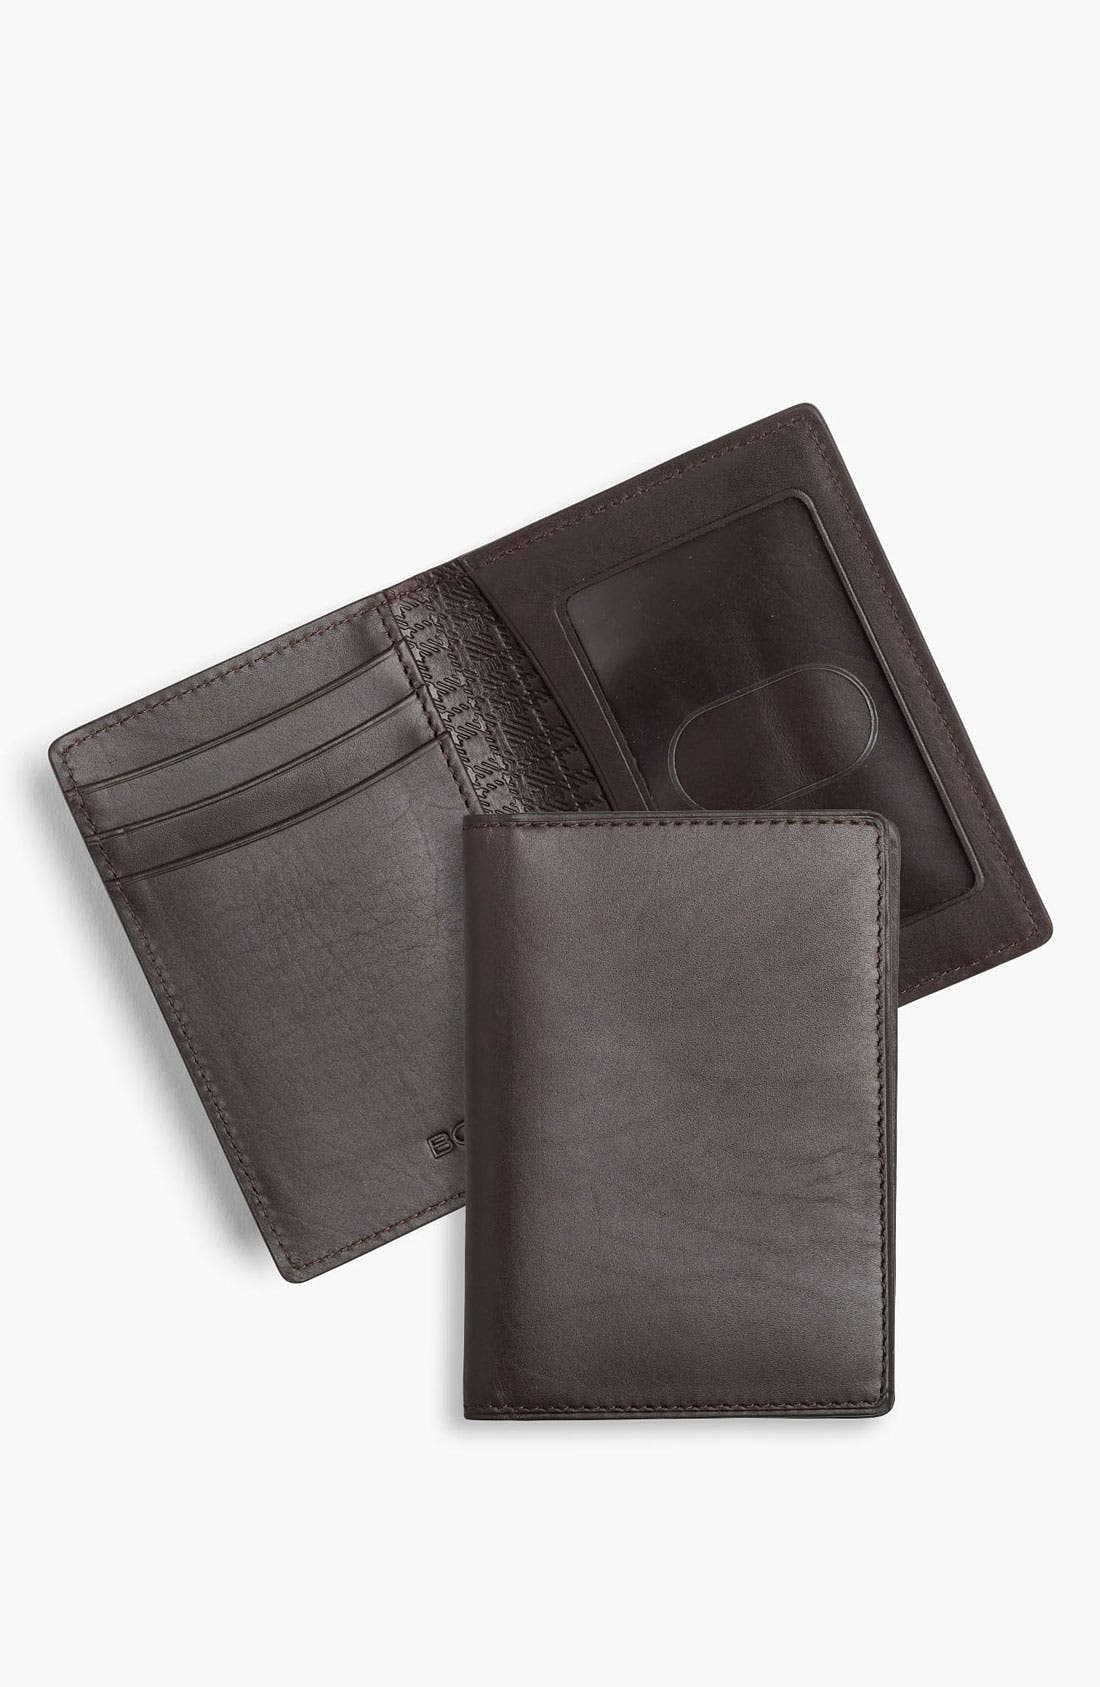 Main Image - Boconi 'Xavier' Card Case